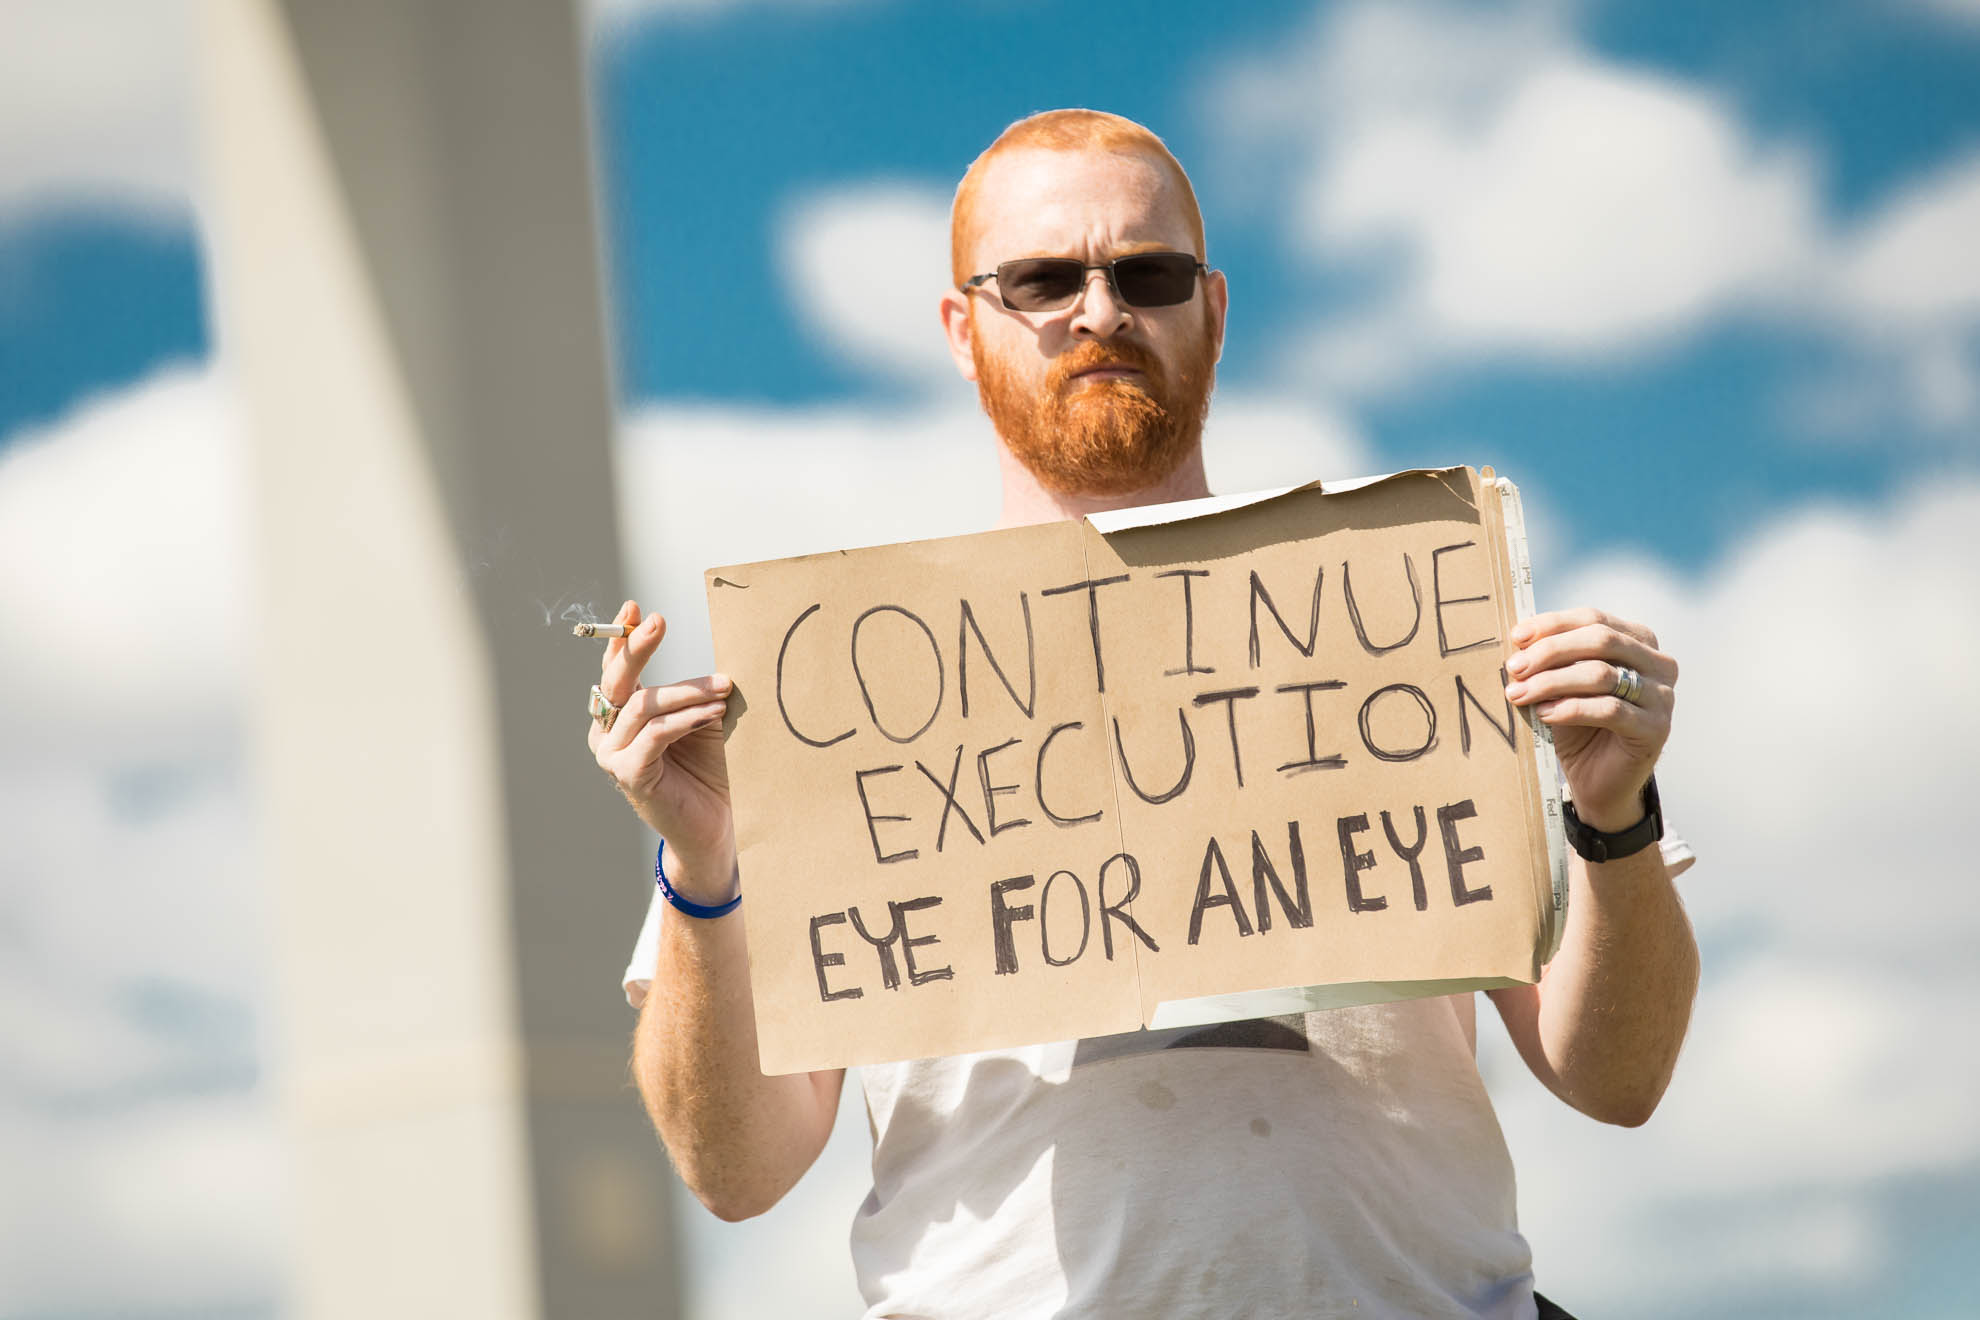 death penalty, photography, photos, execution, documentary, pro, support, trump, federal, terre haute, religious, eye for eye